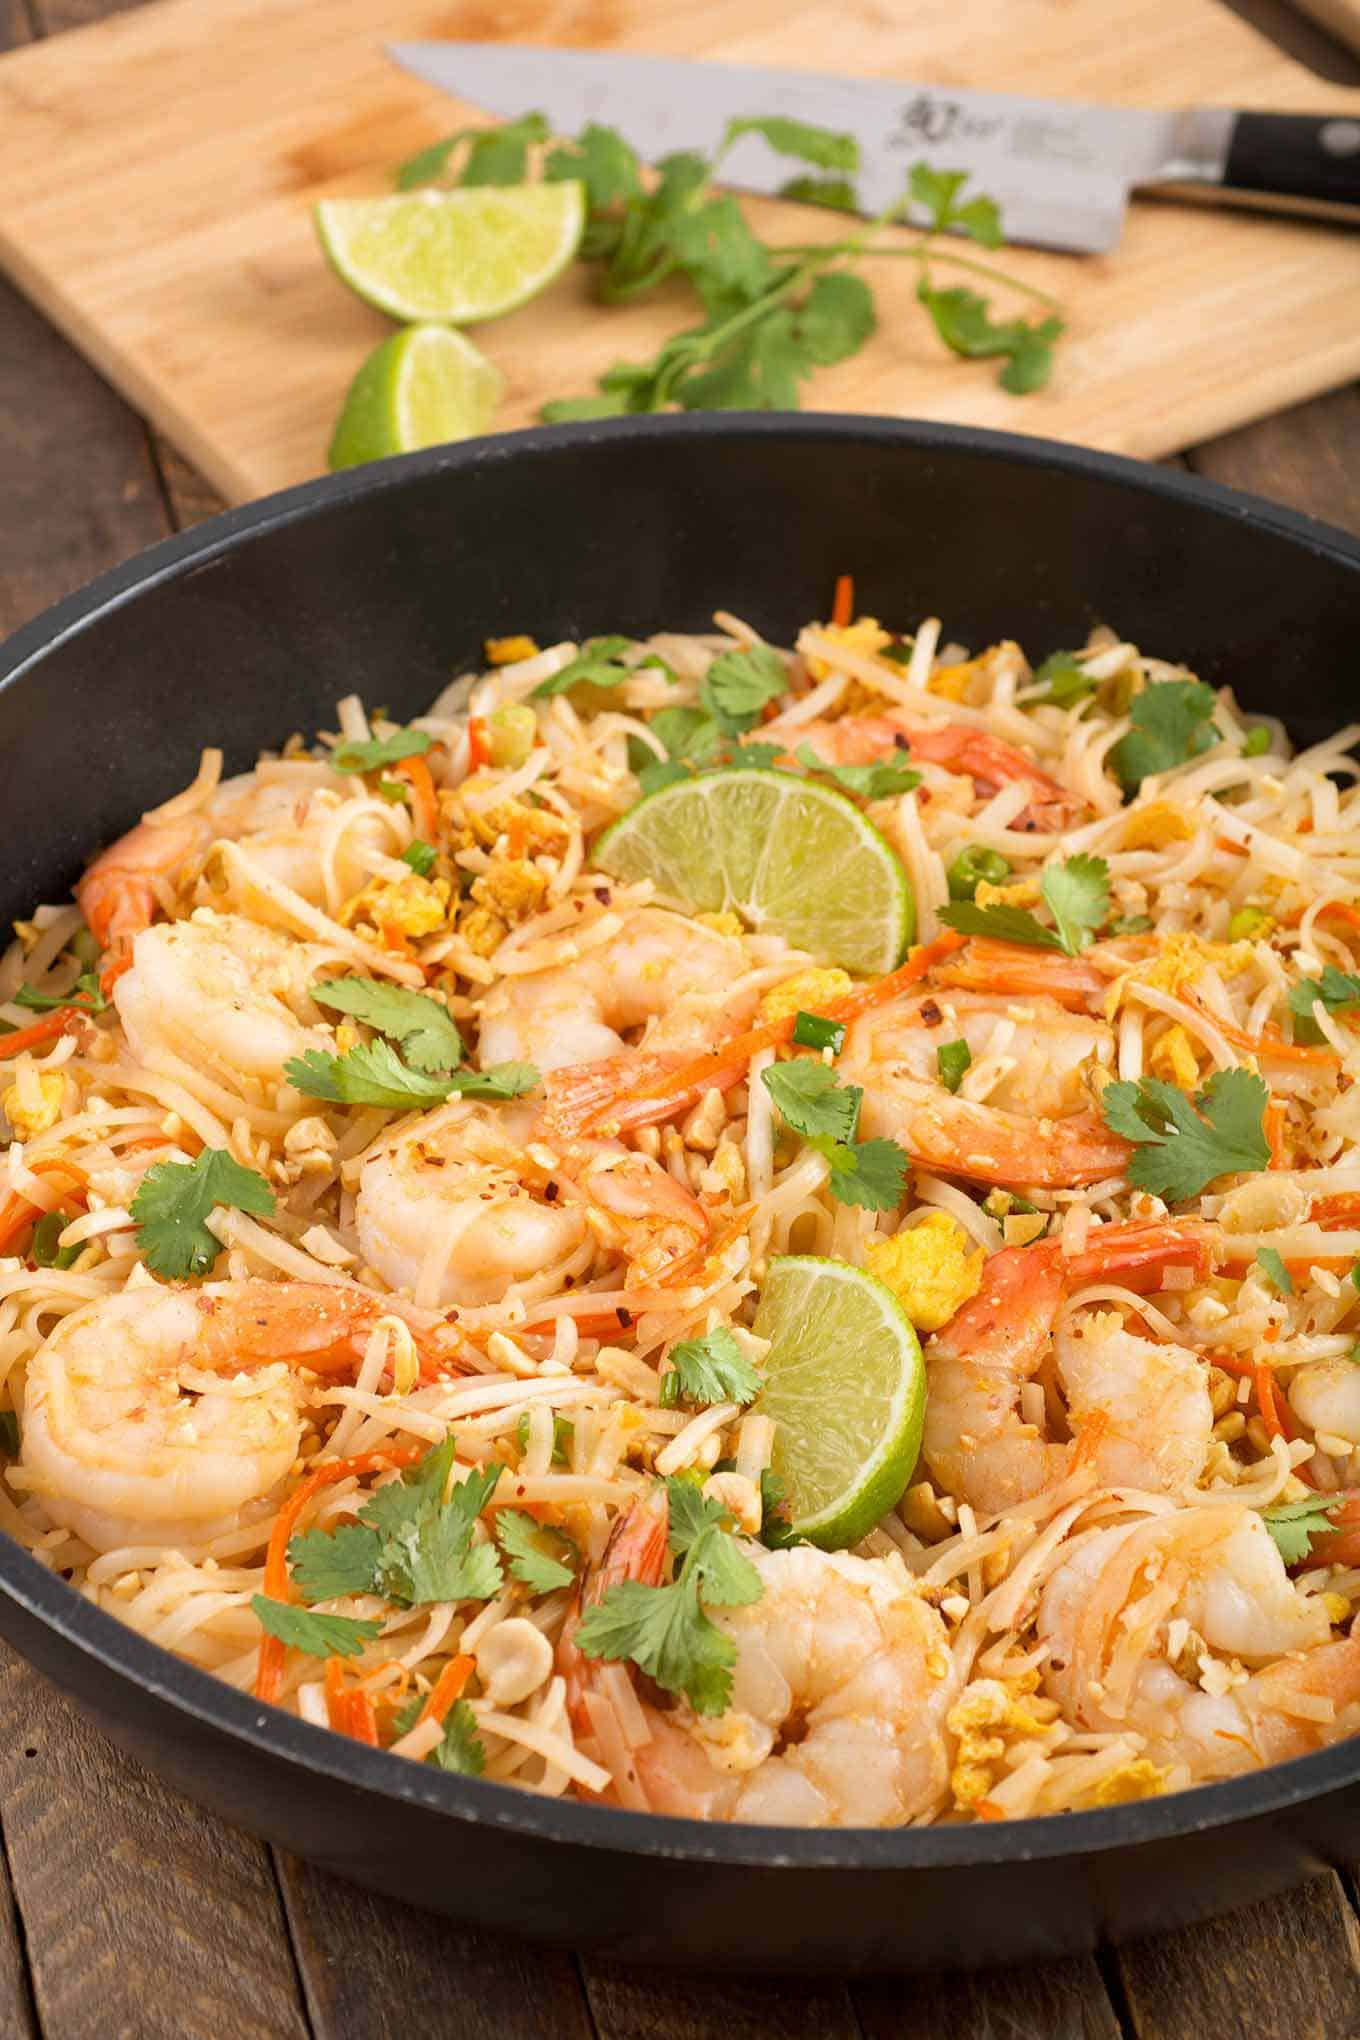 Shrimp Pad Thai in a frying pan garnished with lime wedges and cilantro, cutting board in the background.